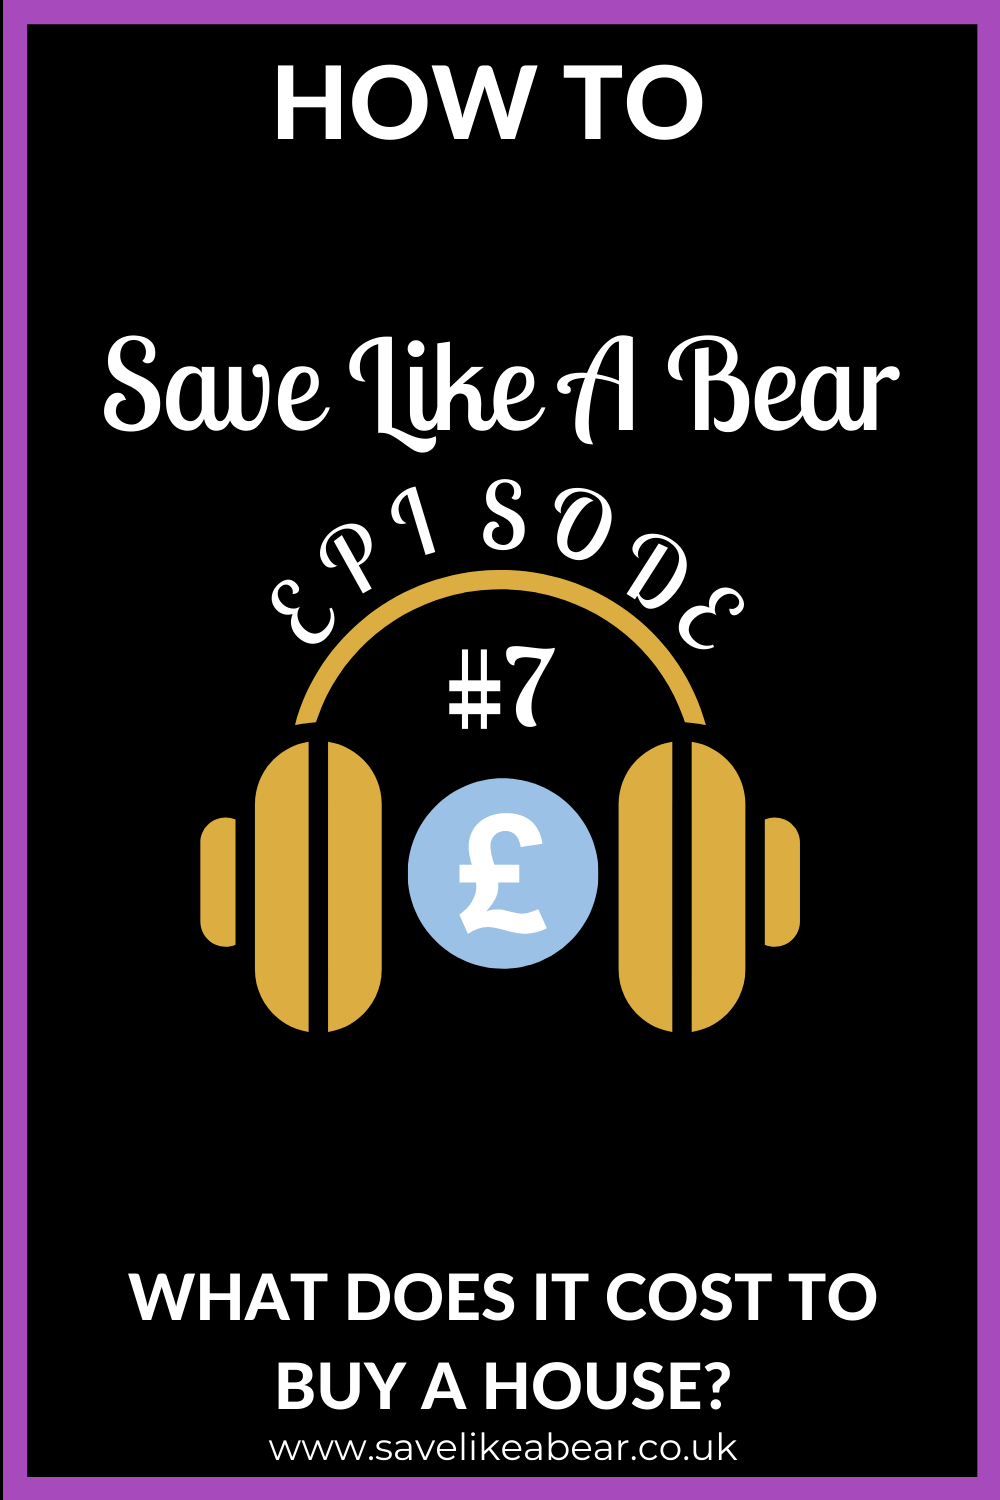 How to save like a bear episode 007 what does it cost to buy a house